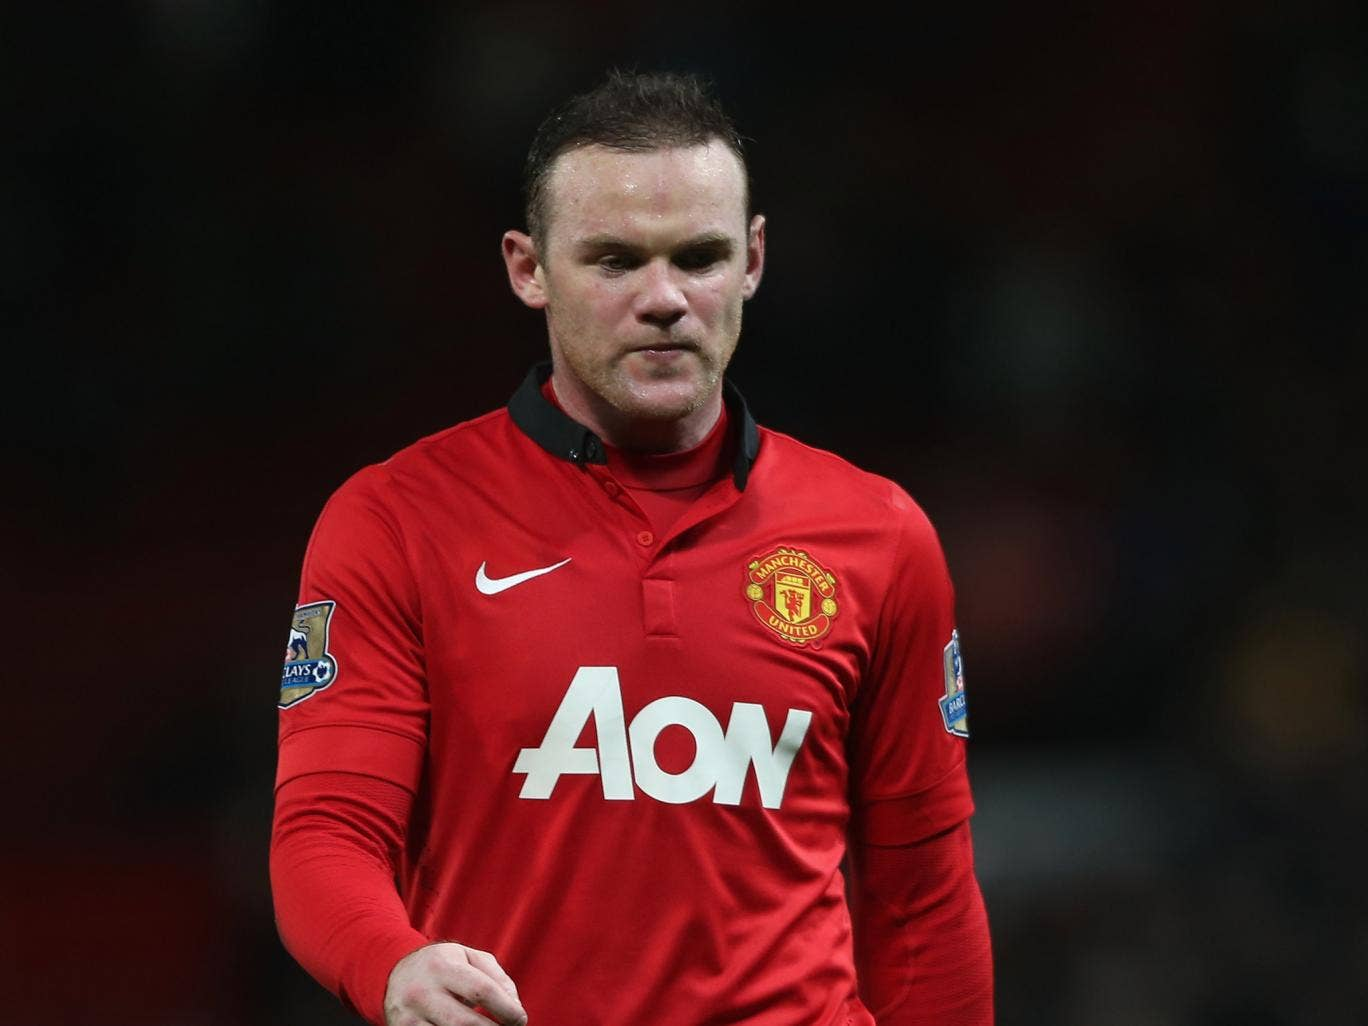 Manchester United manager David Moyes has confirmed that Wayne Rooney will miss the FA Cup tie with Swansea